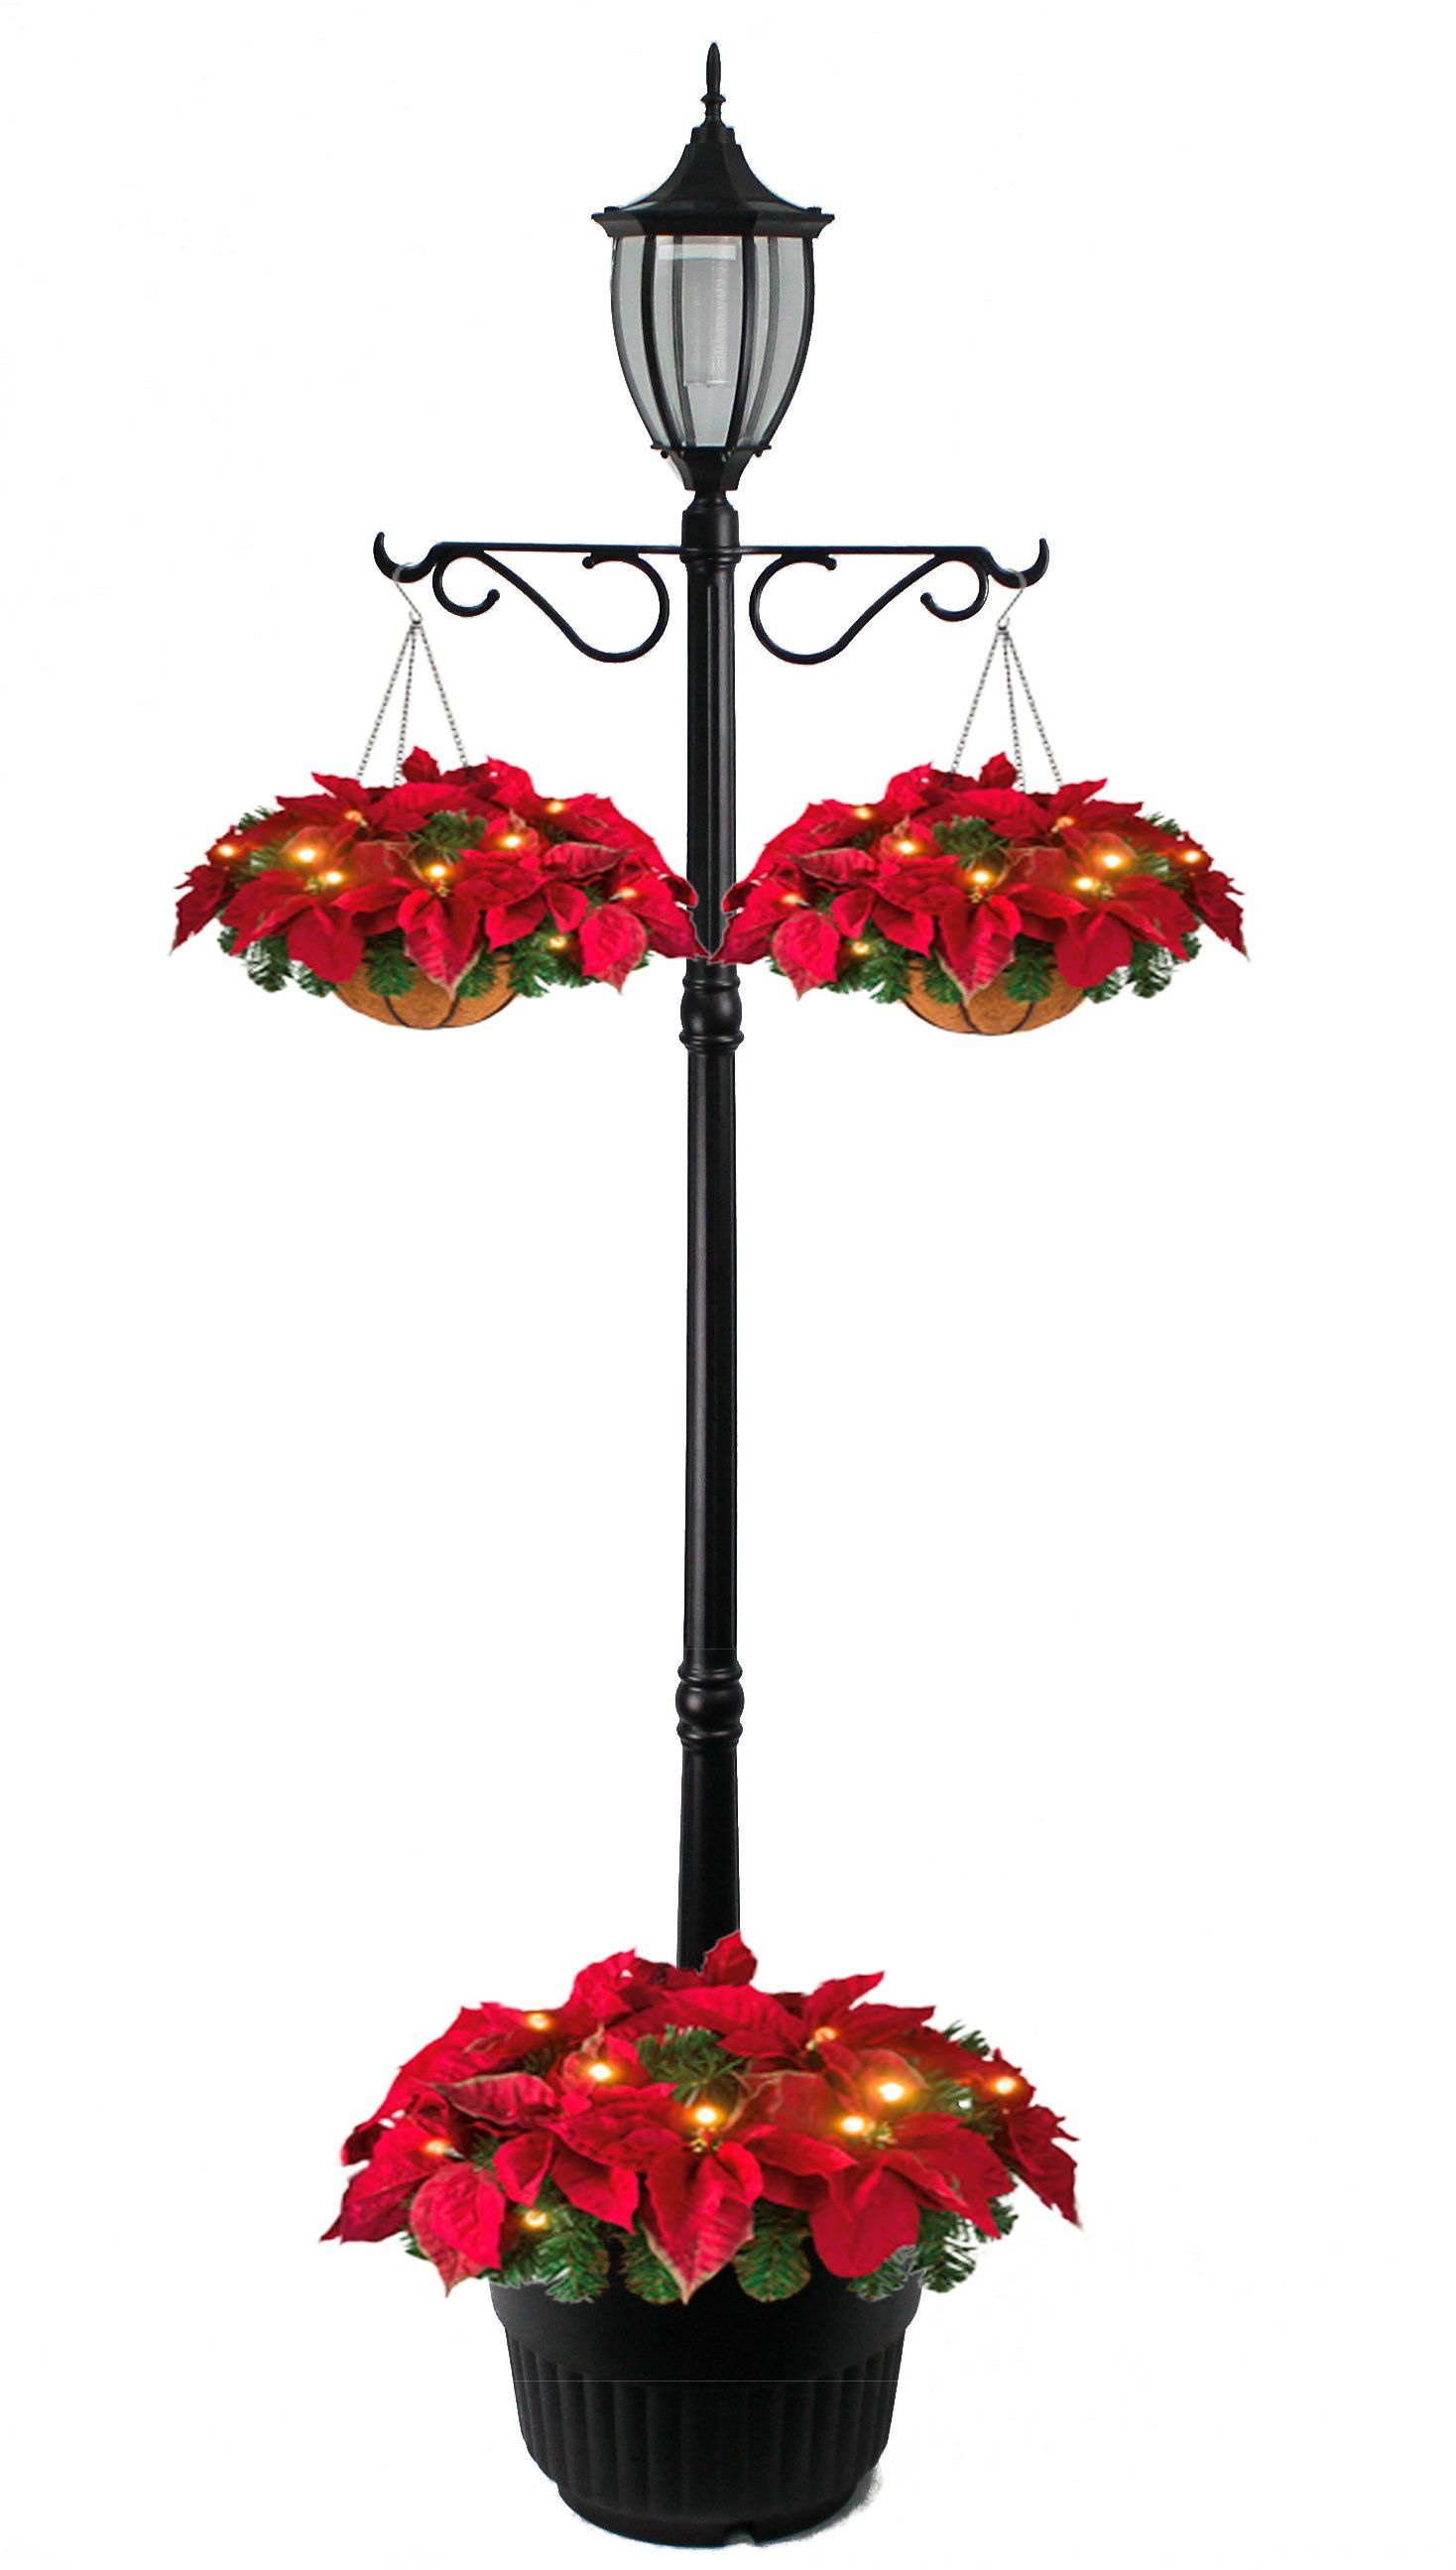 SunRay Cresmont Solar Lamp Post and Planter, with Hanger, Black, Single Head by SunRay